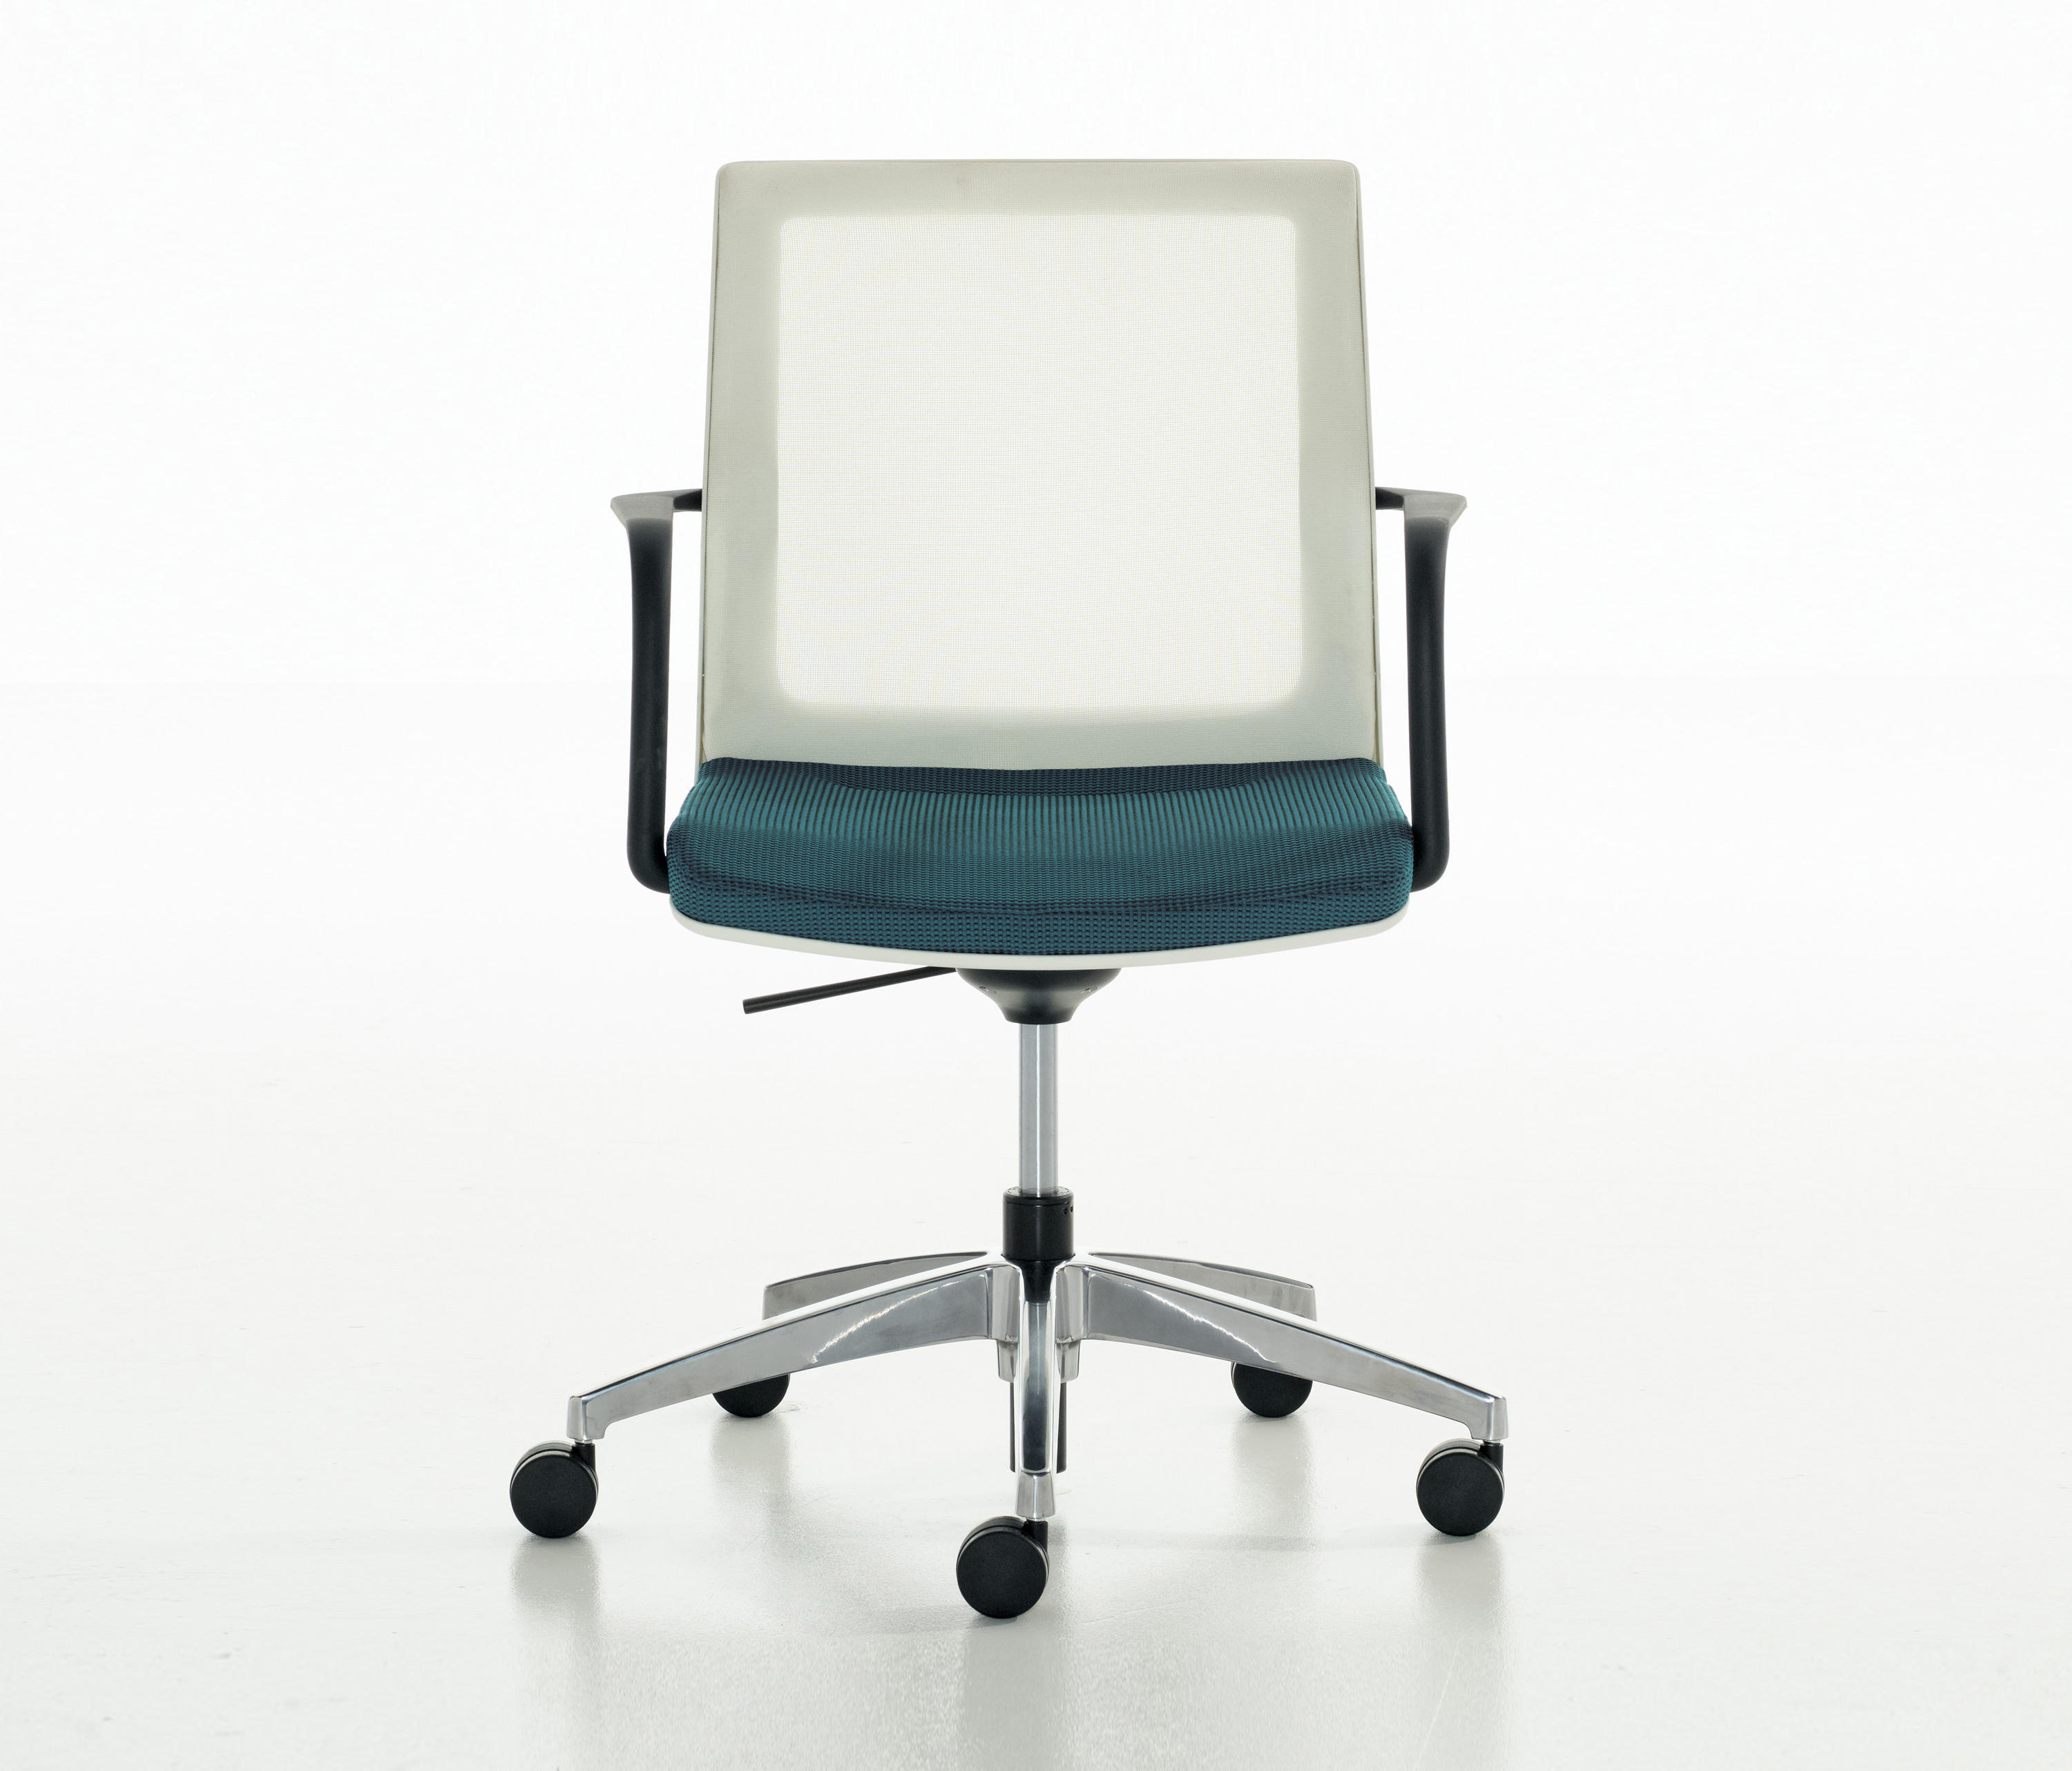 Research and select Conference chairs from Teknion online